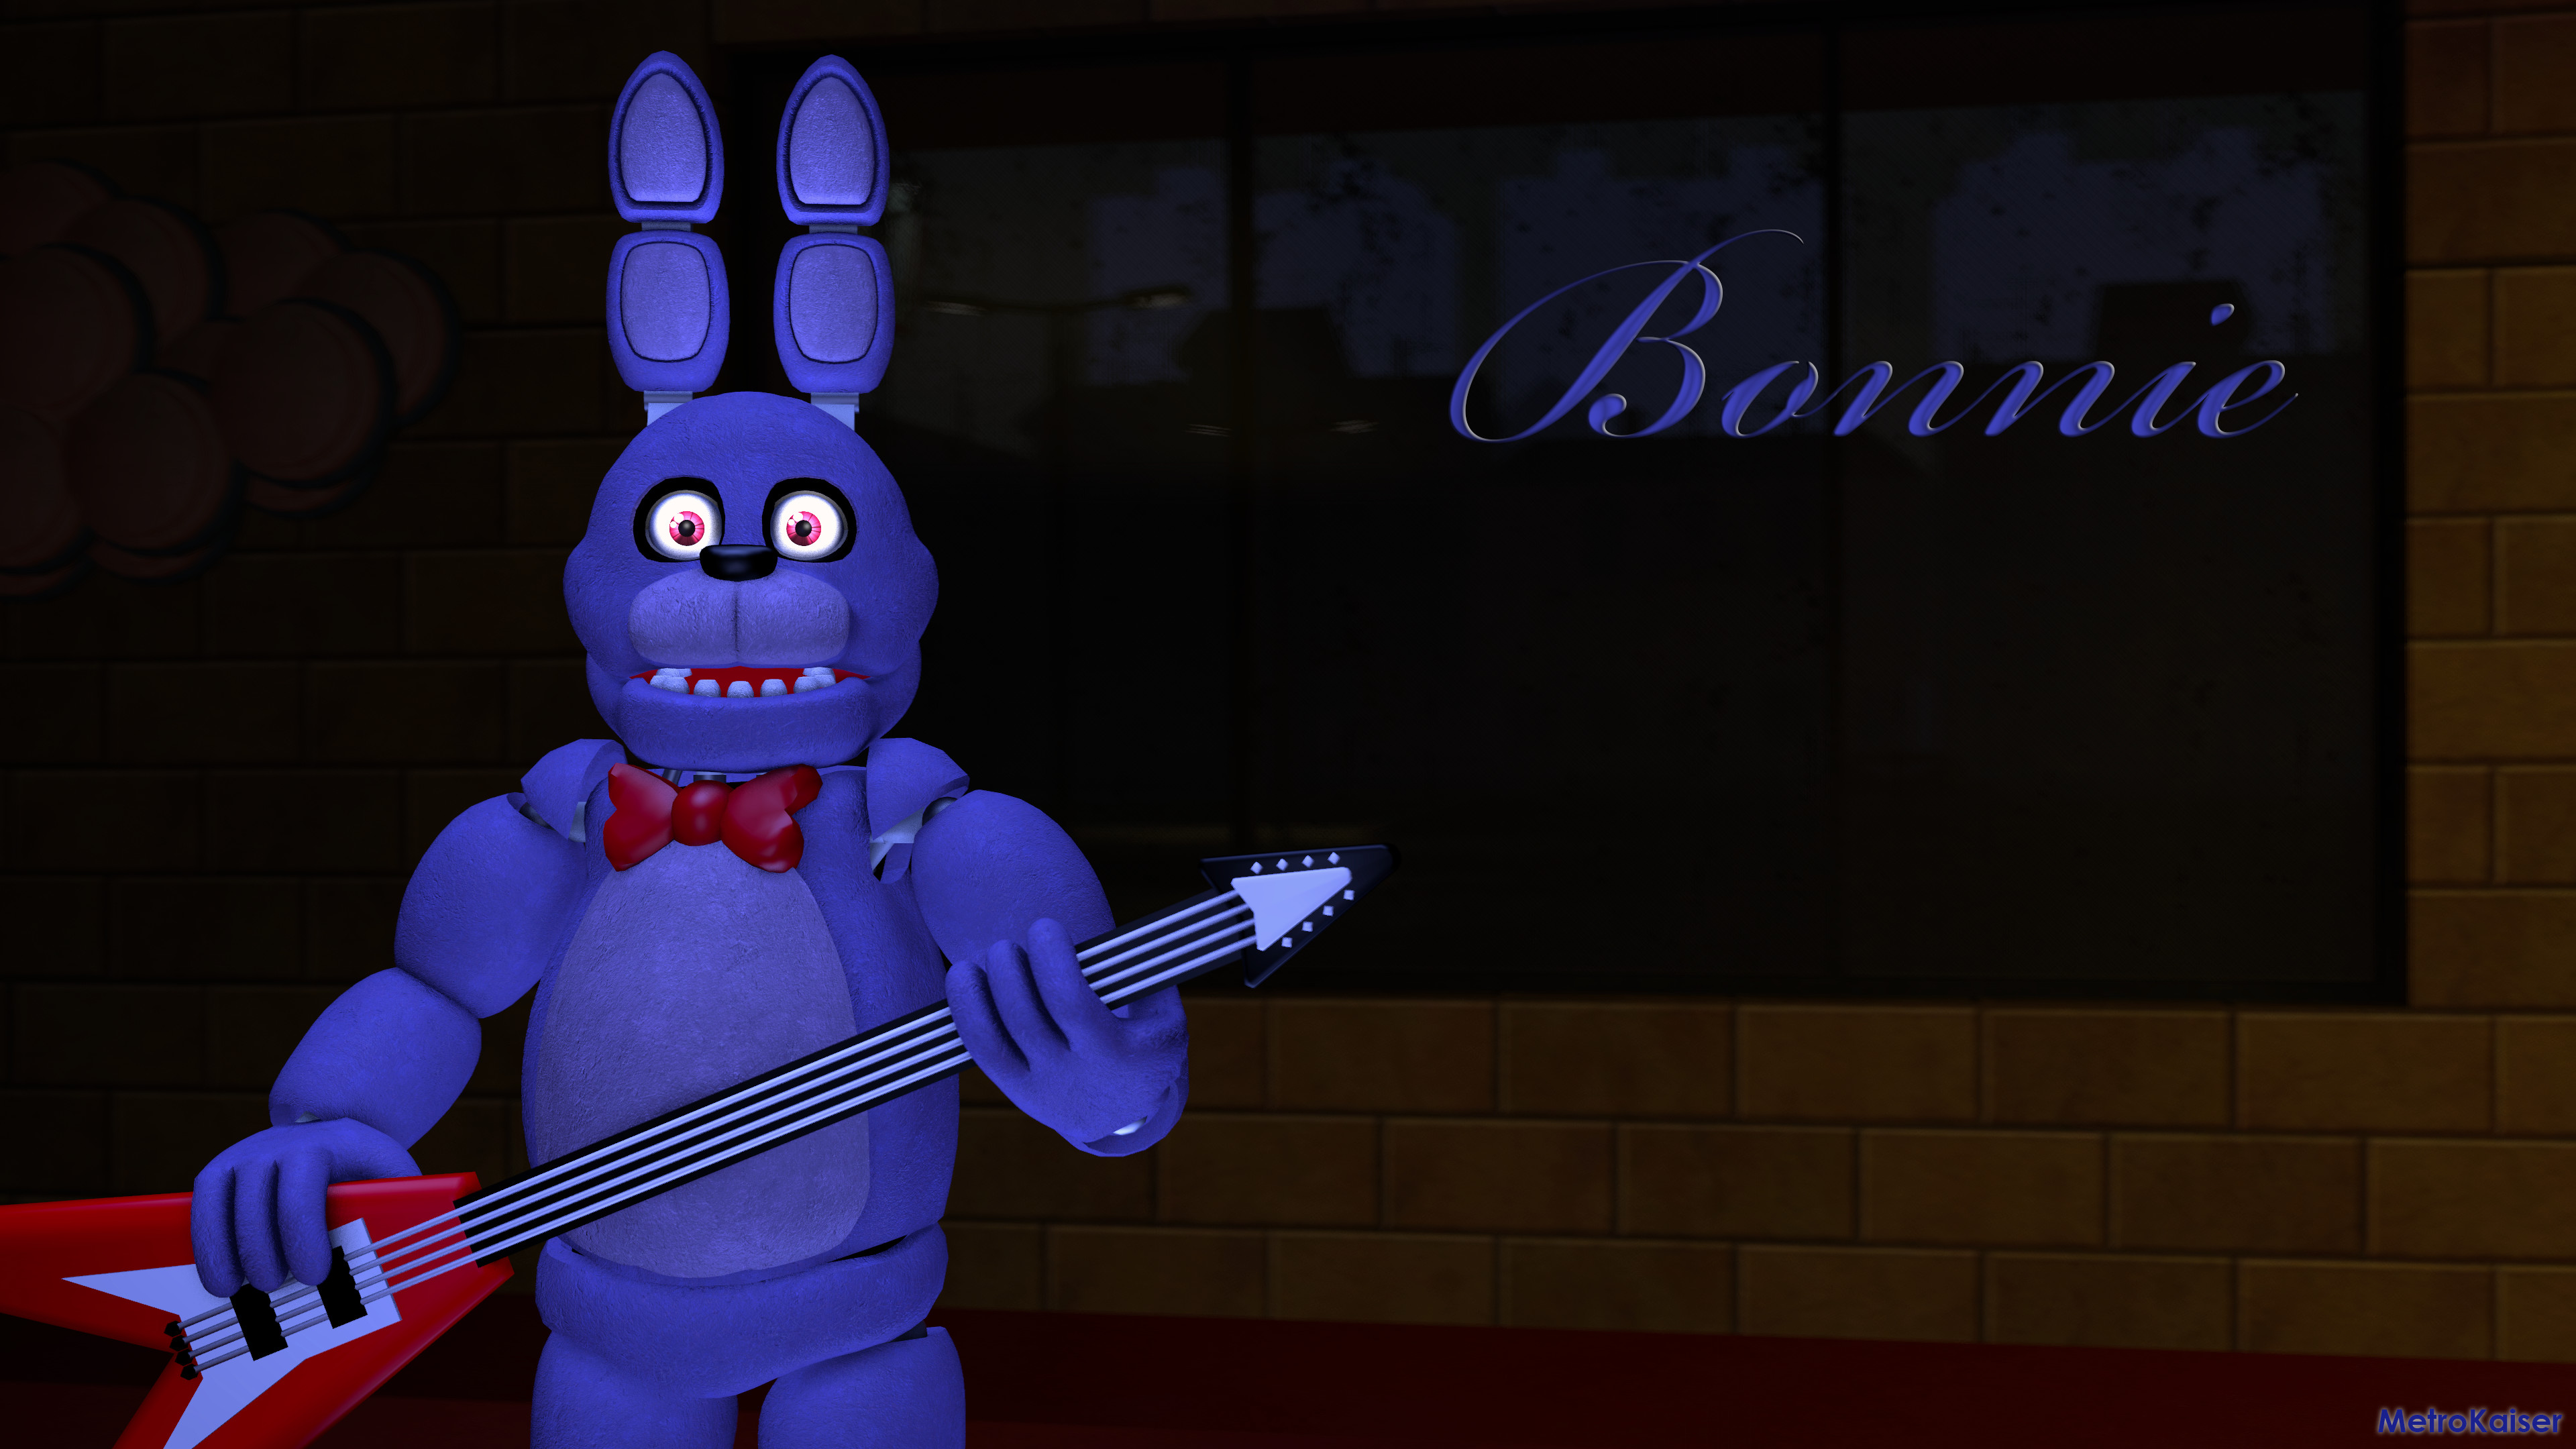 3840x2160 FNAF Bonnie Wallpapers for Desktop ( px, 7.86 Mb)